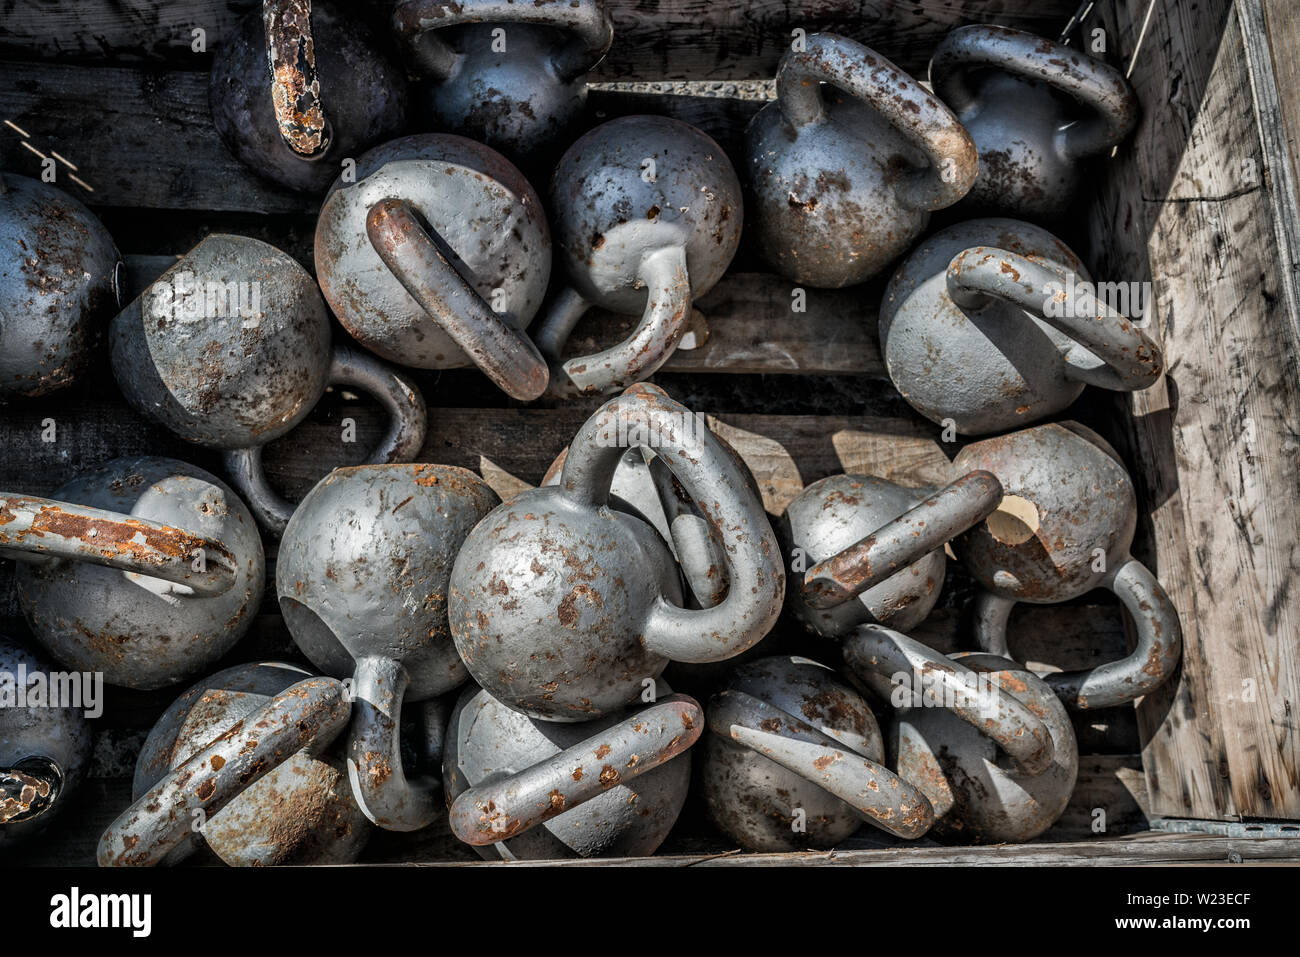 Many kettlebells weights background at outdoor gym. Texture of stell free weights for weightlifting lying on the floor at fitness center for cross training. - Stock Image